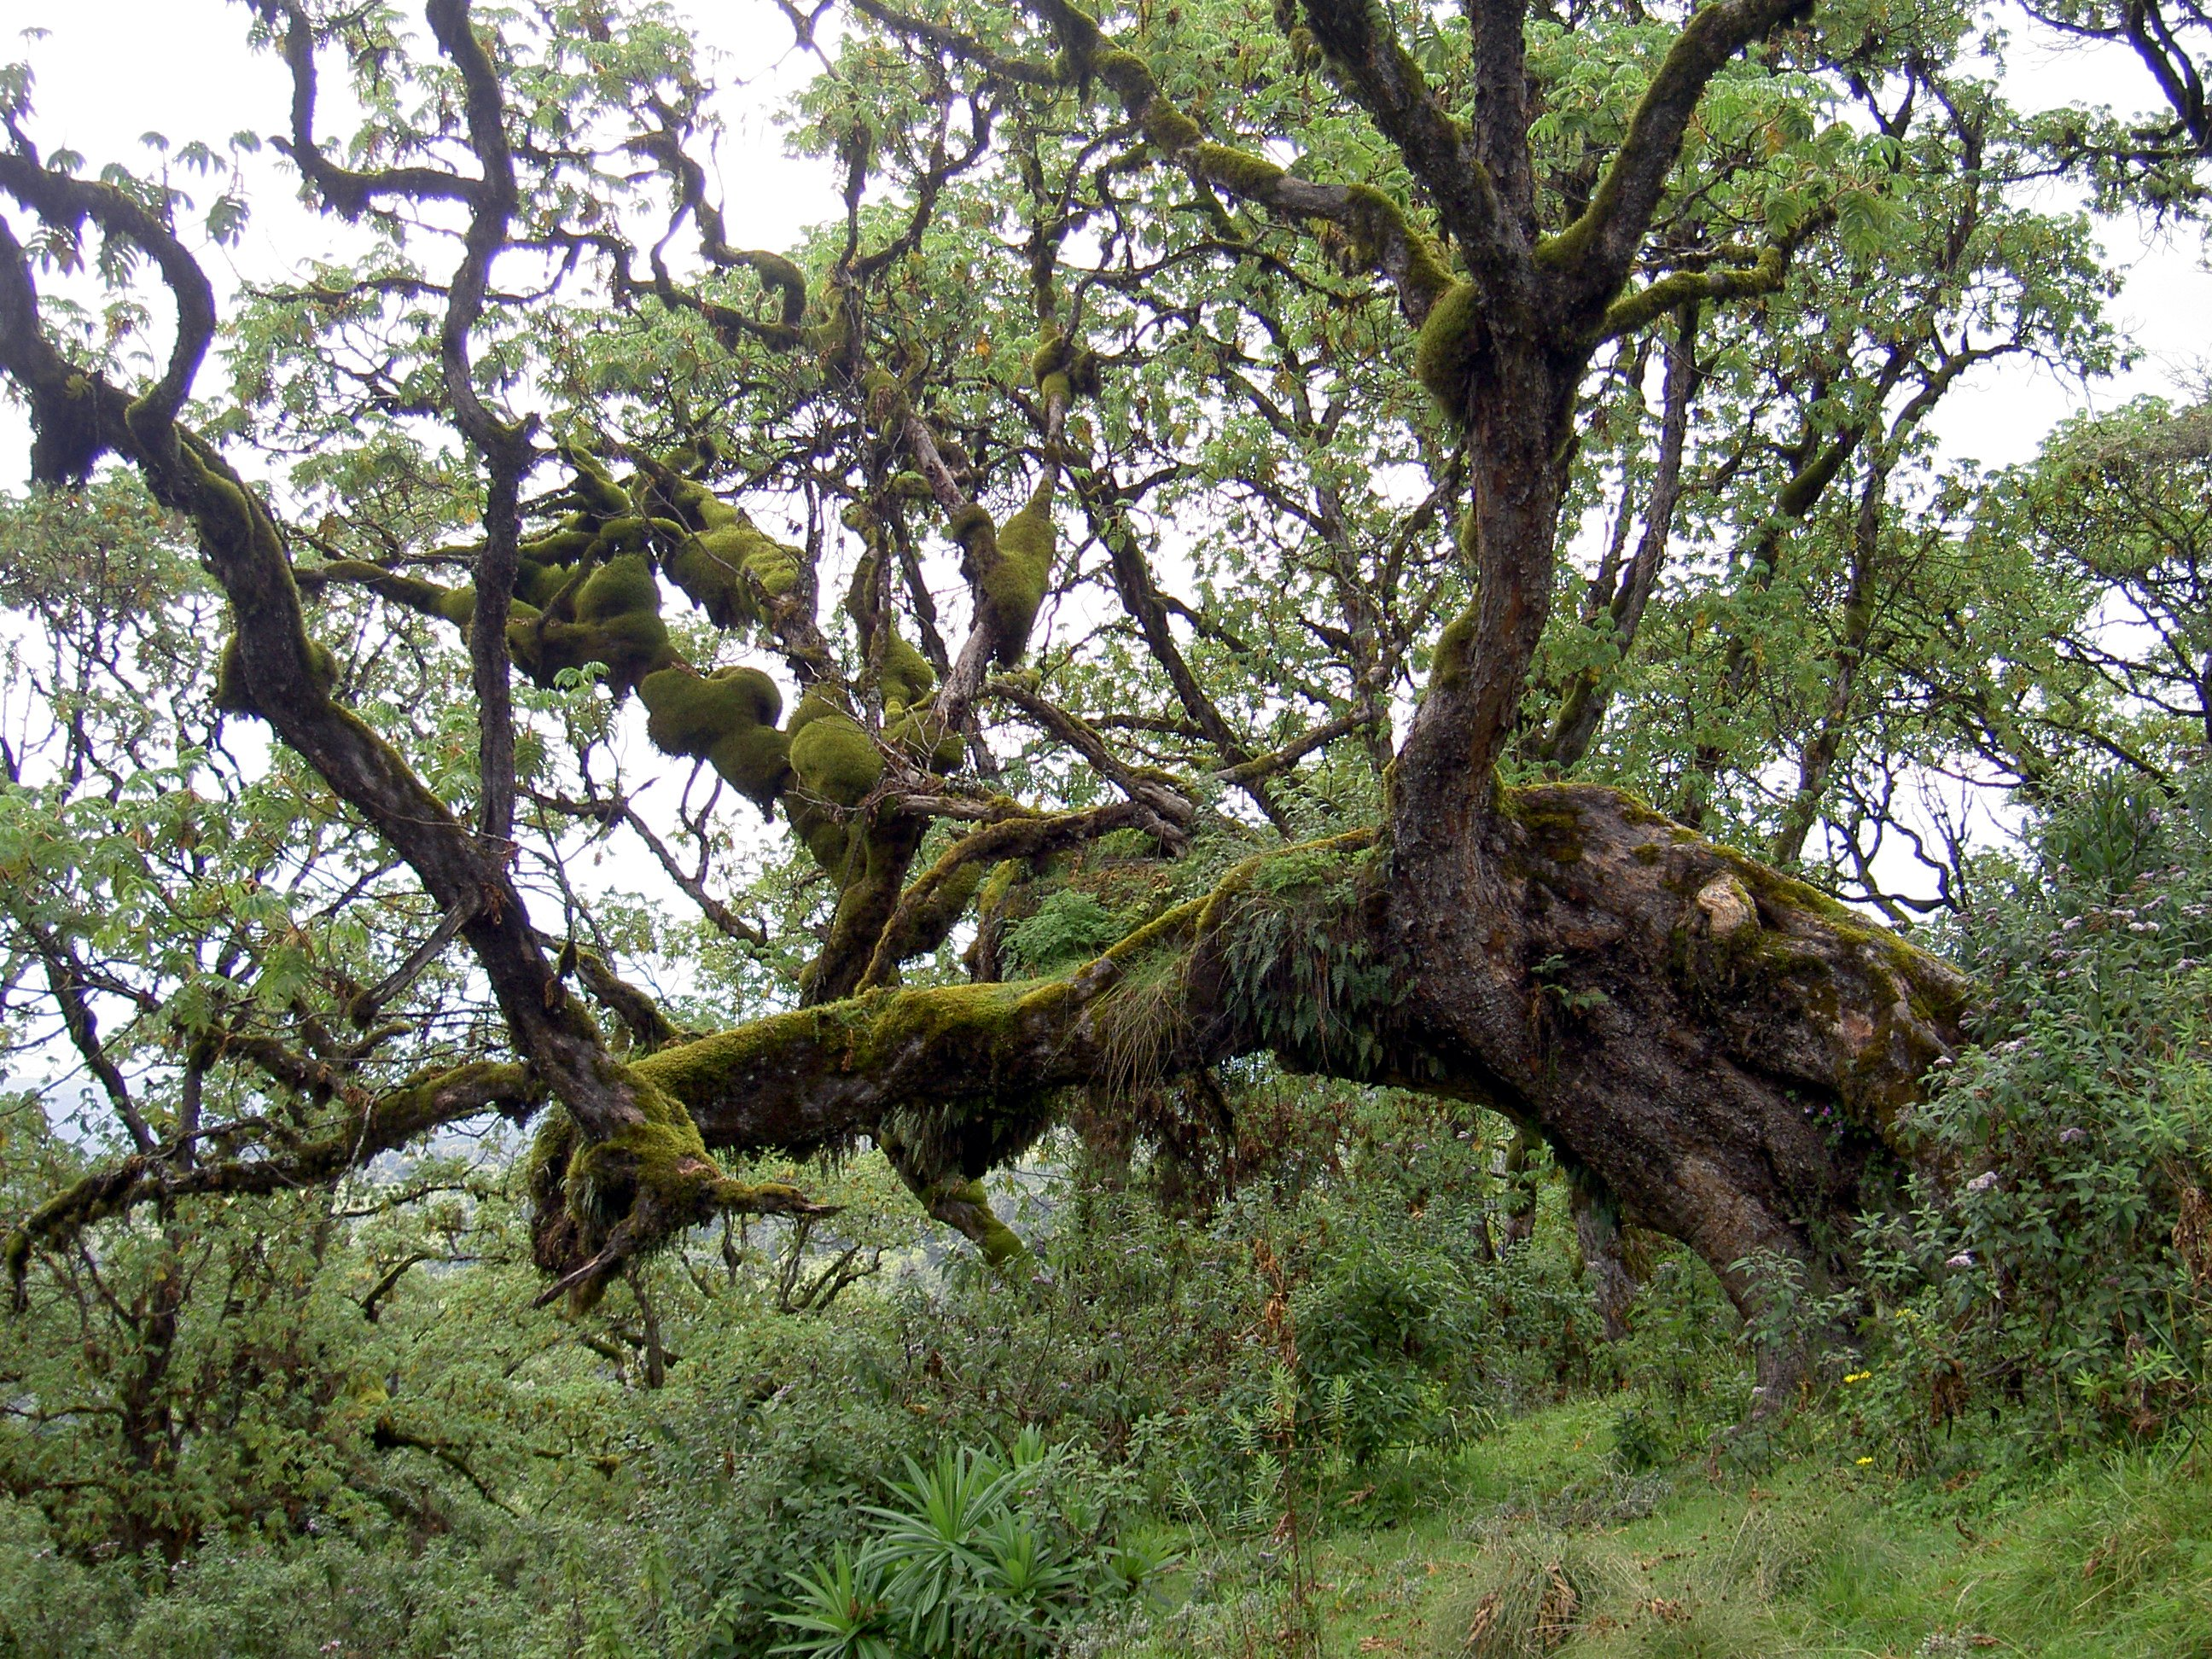 Section of Rainforest in Kenya (in Wikimedia Commons)